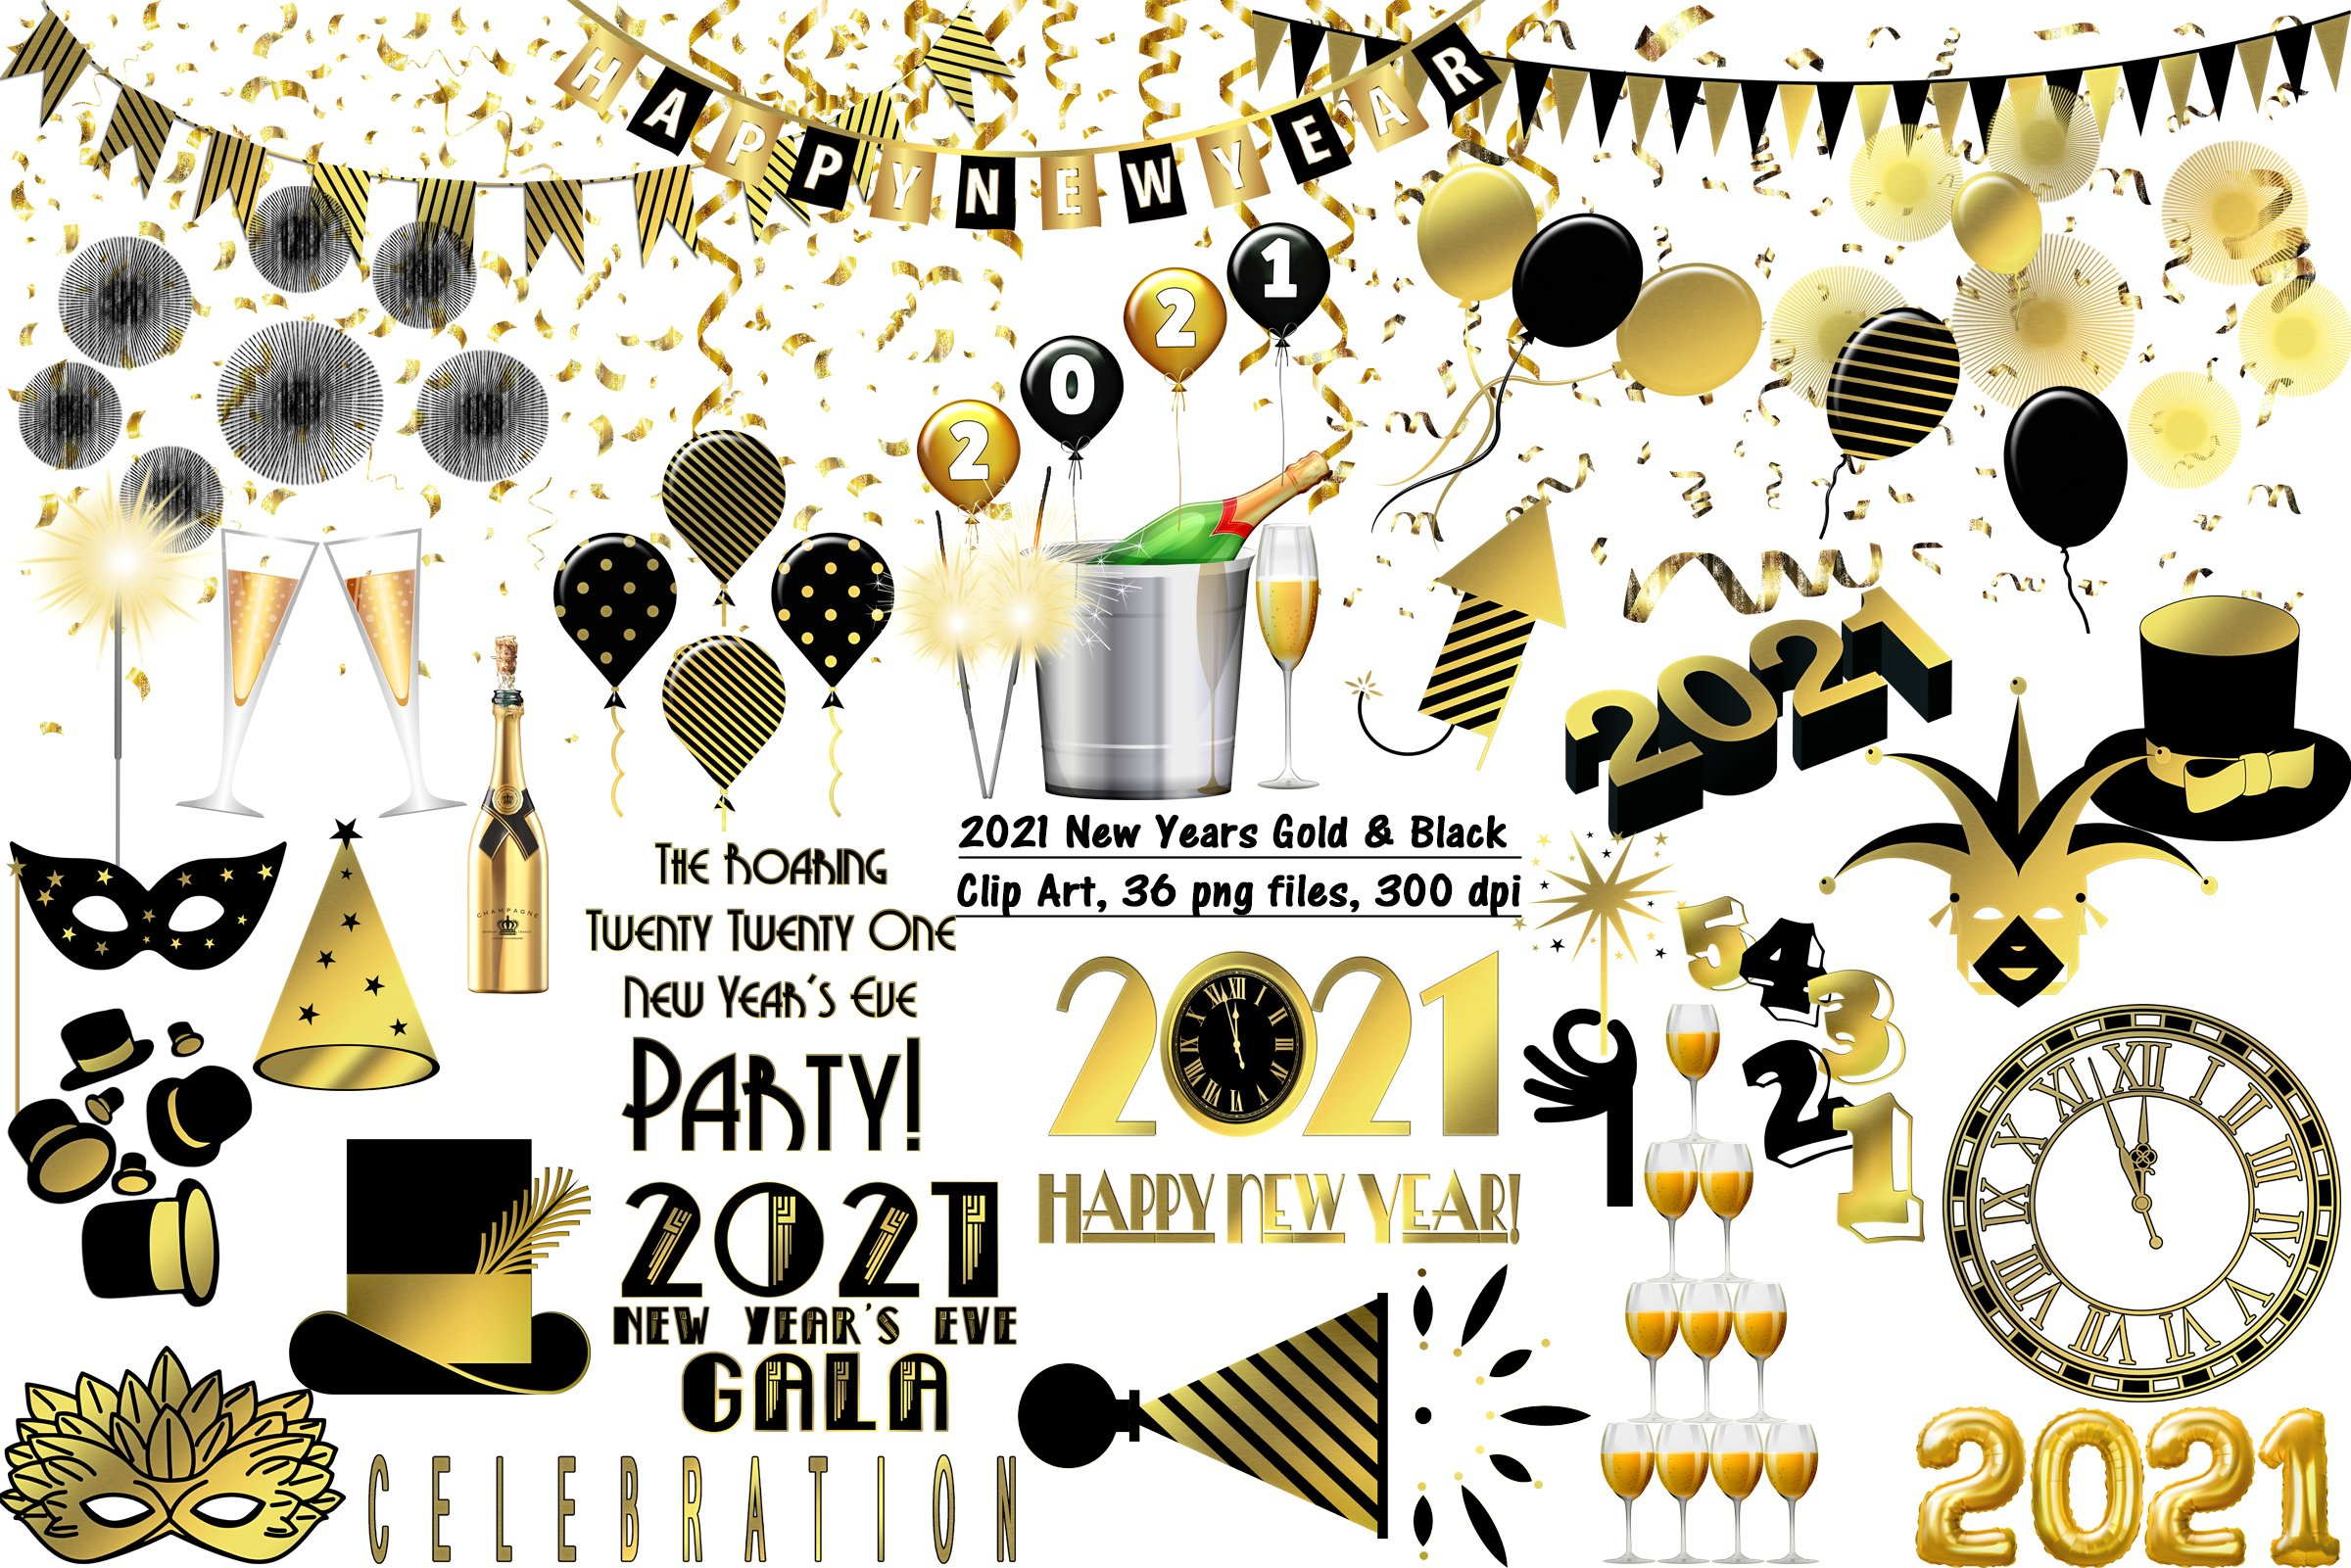 new year 2021 black and gold clip art 389032 illustrations design bundles new year 2021 black and gold clip art